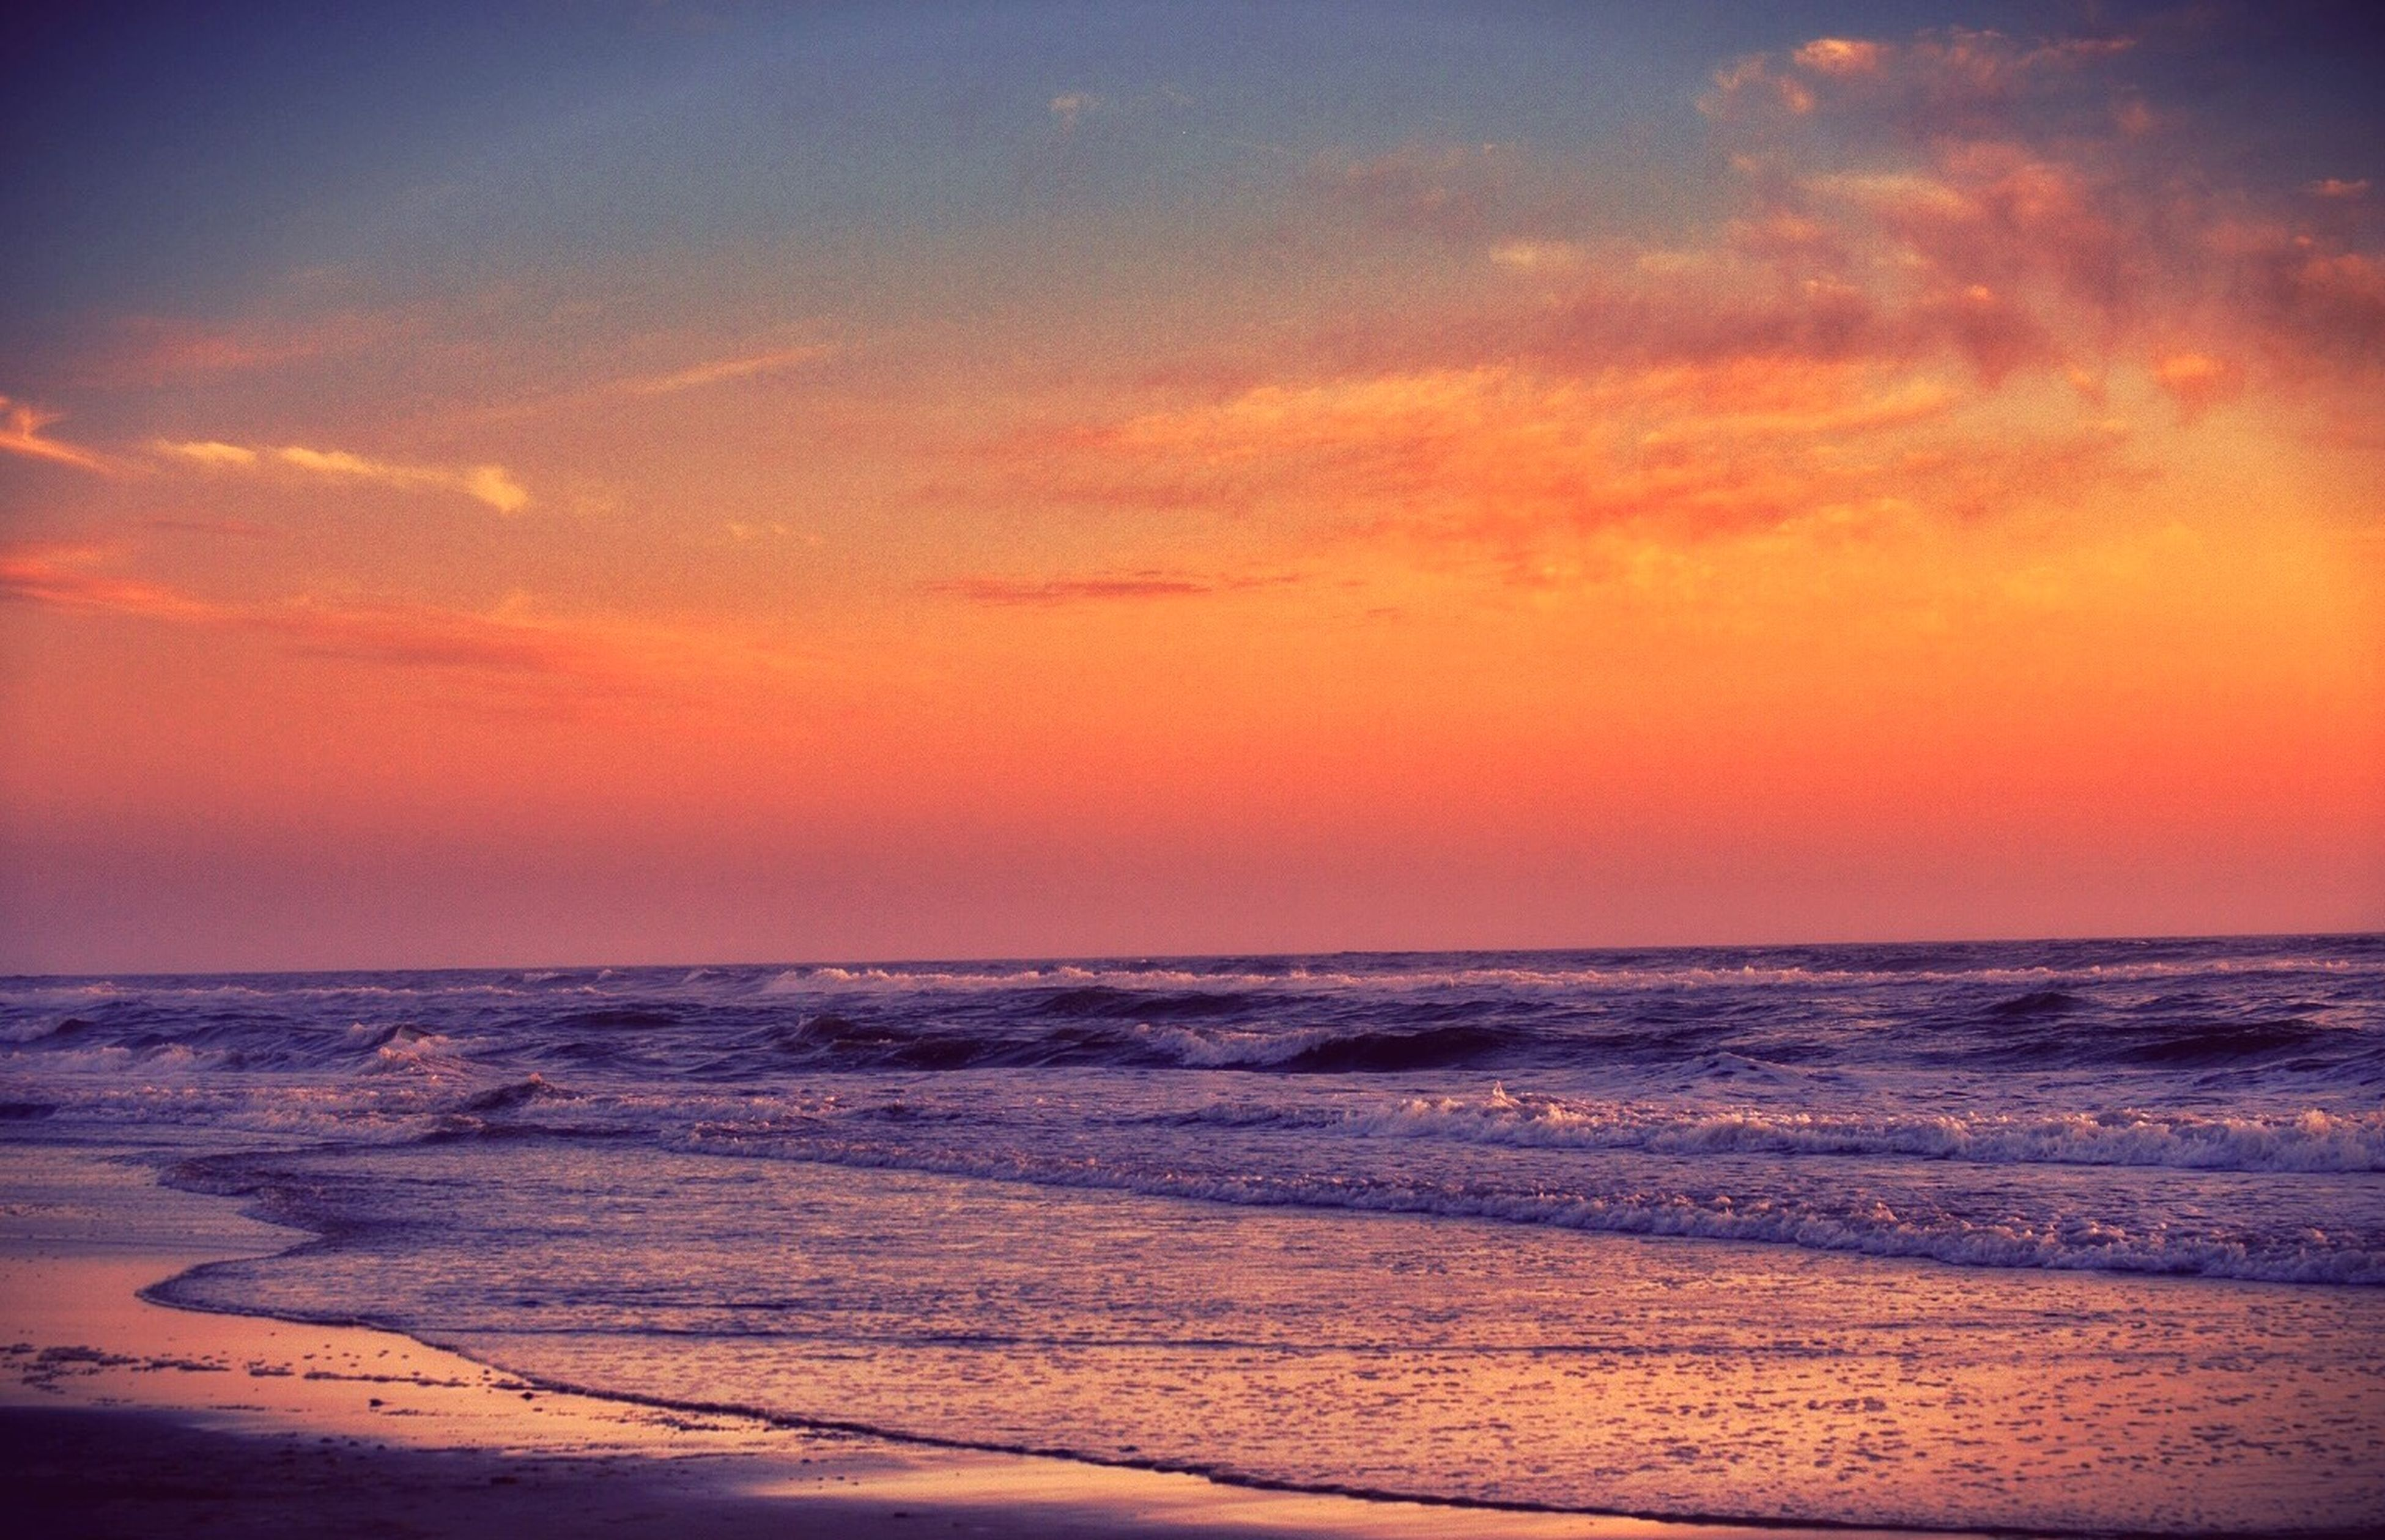 sunset, sea, horizon over water, orange color, beach, scenics, water, tranquil scene, beauty in nature, tranquility, shore, sky, idyllic, nature, wave, sand, sun, remote, outdoors, seascape